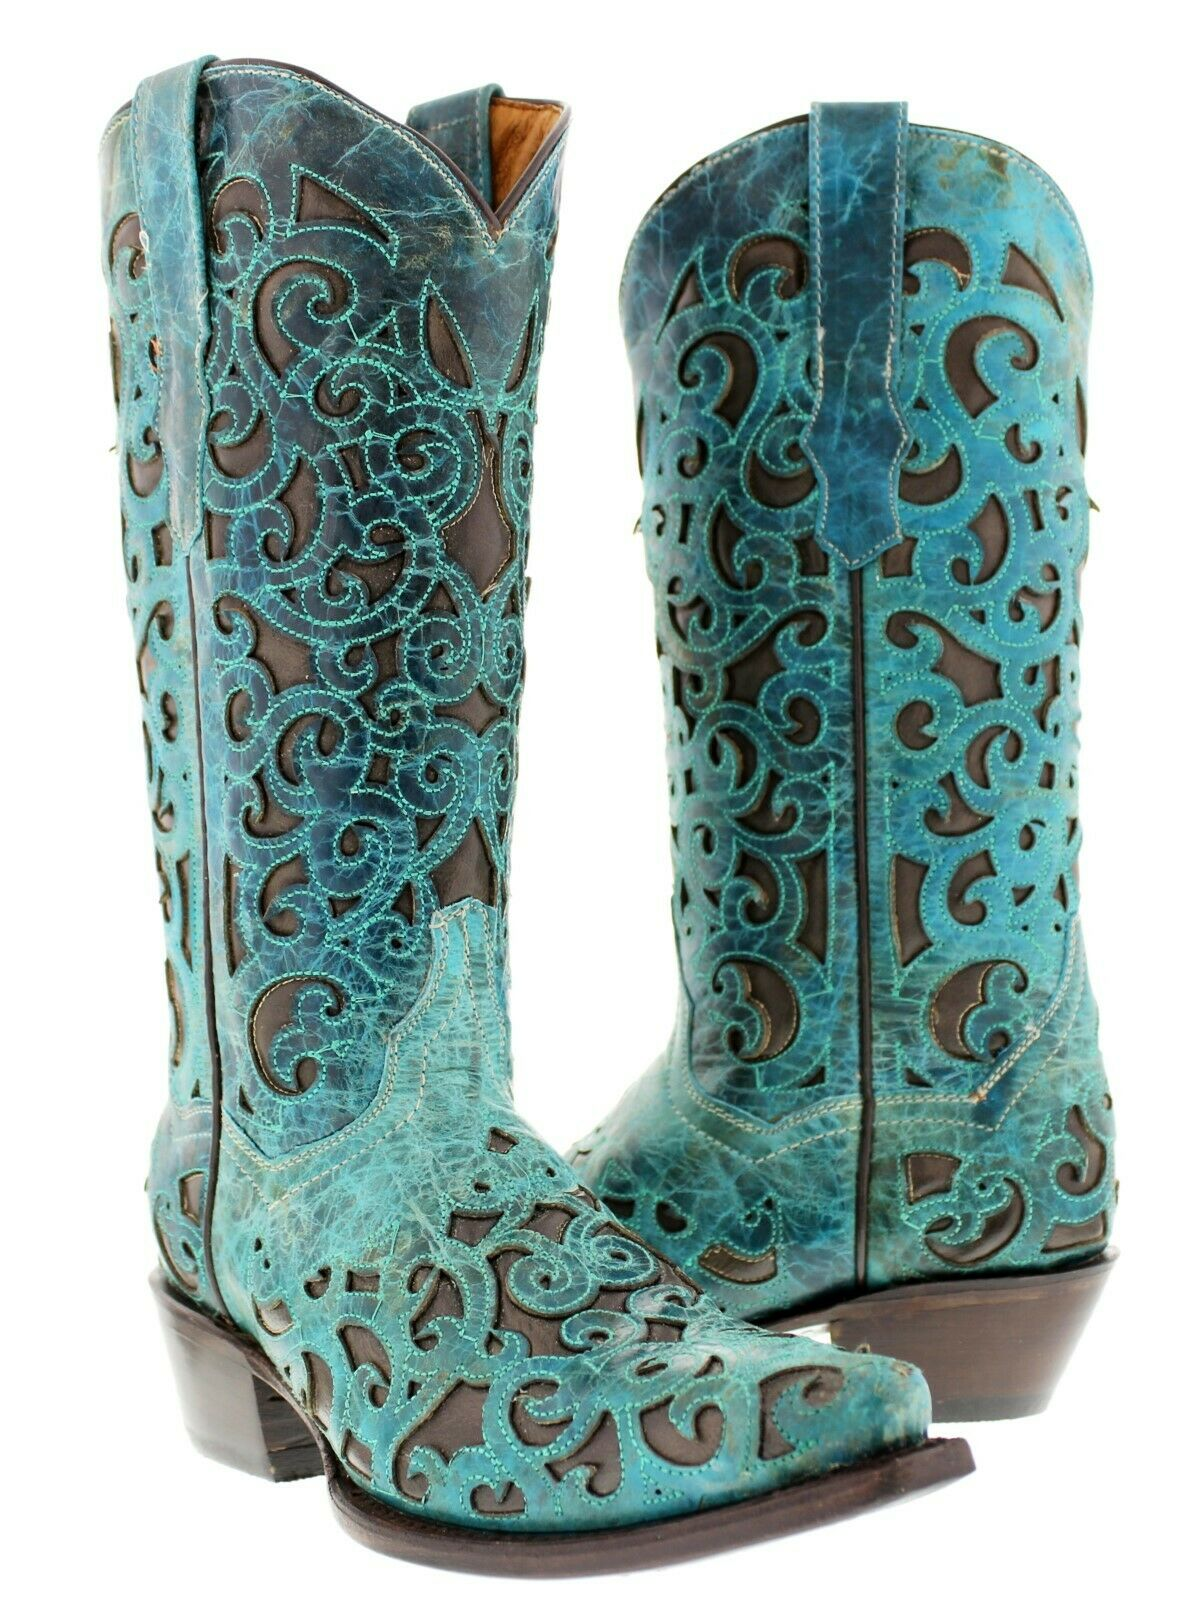 centro commerciale di moda donna Turquoise Inlay Western Cowgirl stivali Distressed Leather Marrone Snip Snip Snip Toe  negozio di vendita outlet